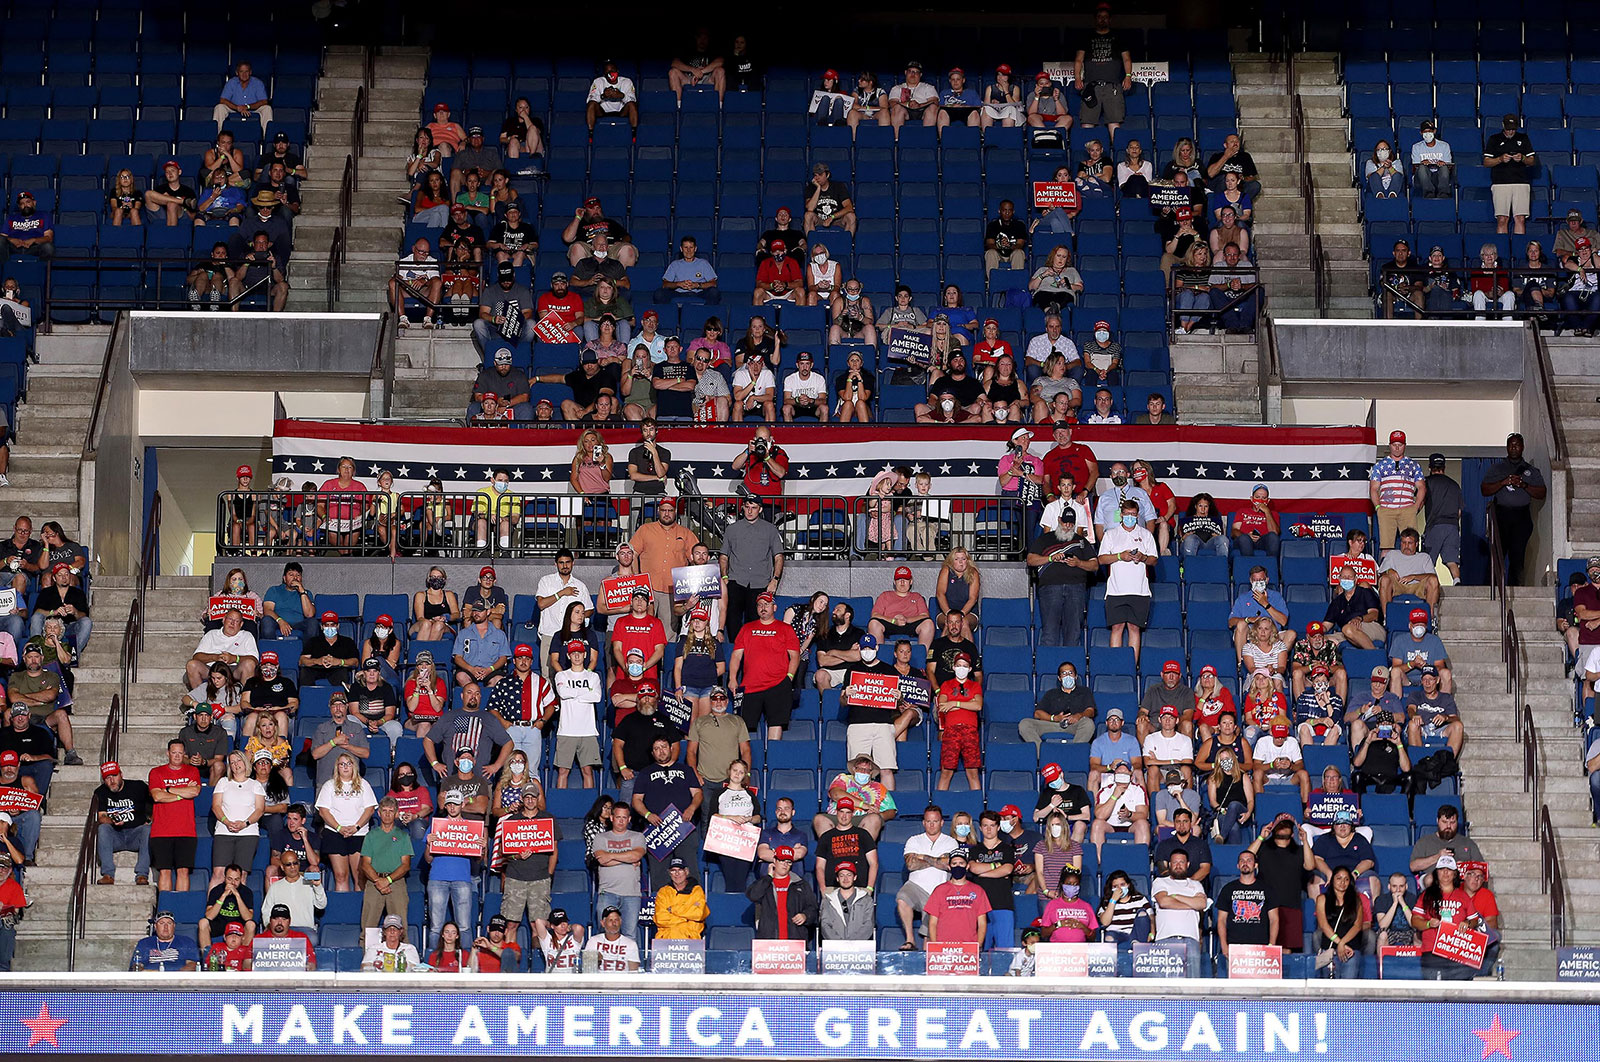 The crowd for President Trump's rally was smaller than expected.